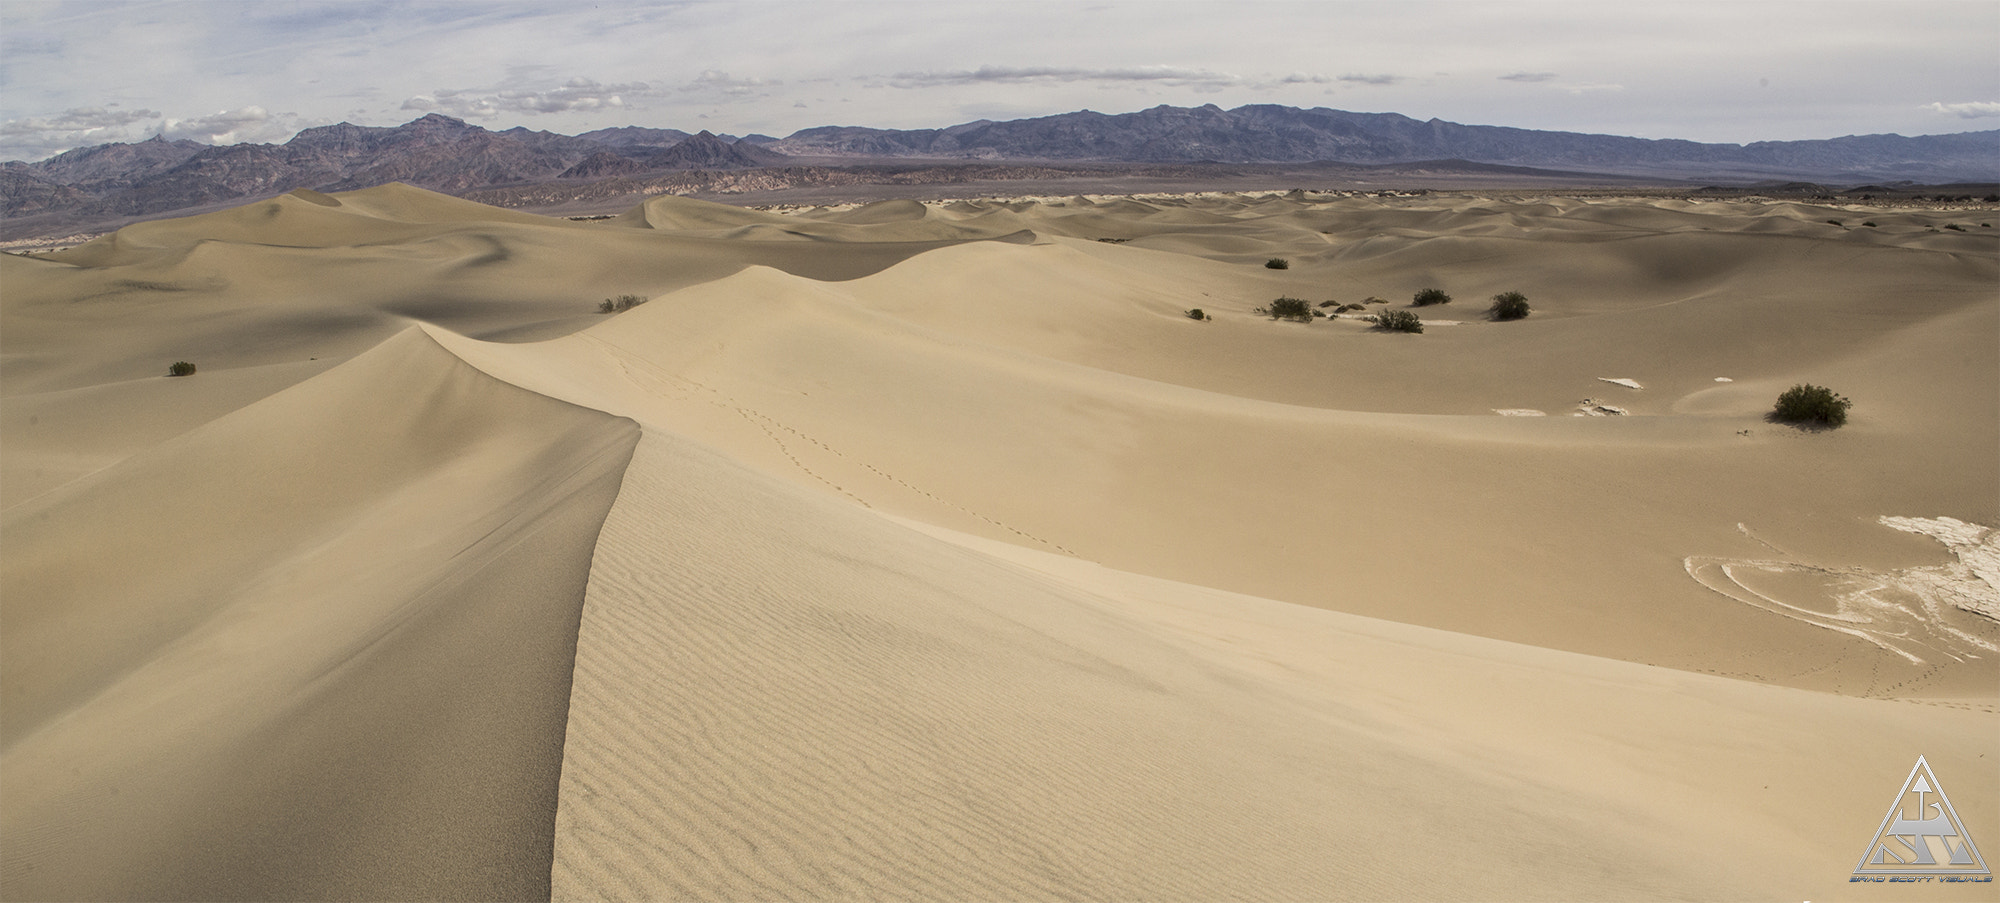 Photograph Mesquite Dunes Death Valley by Brad Scott on 500px